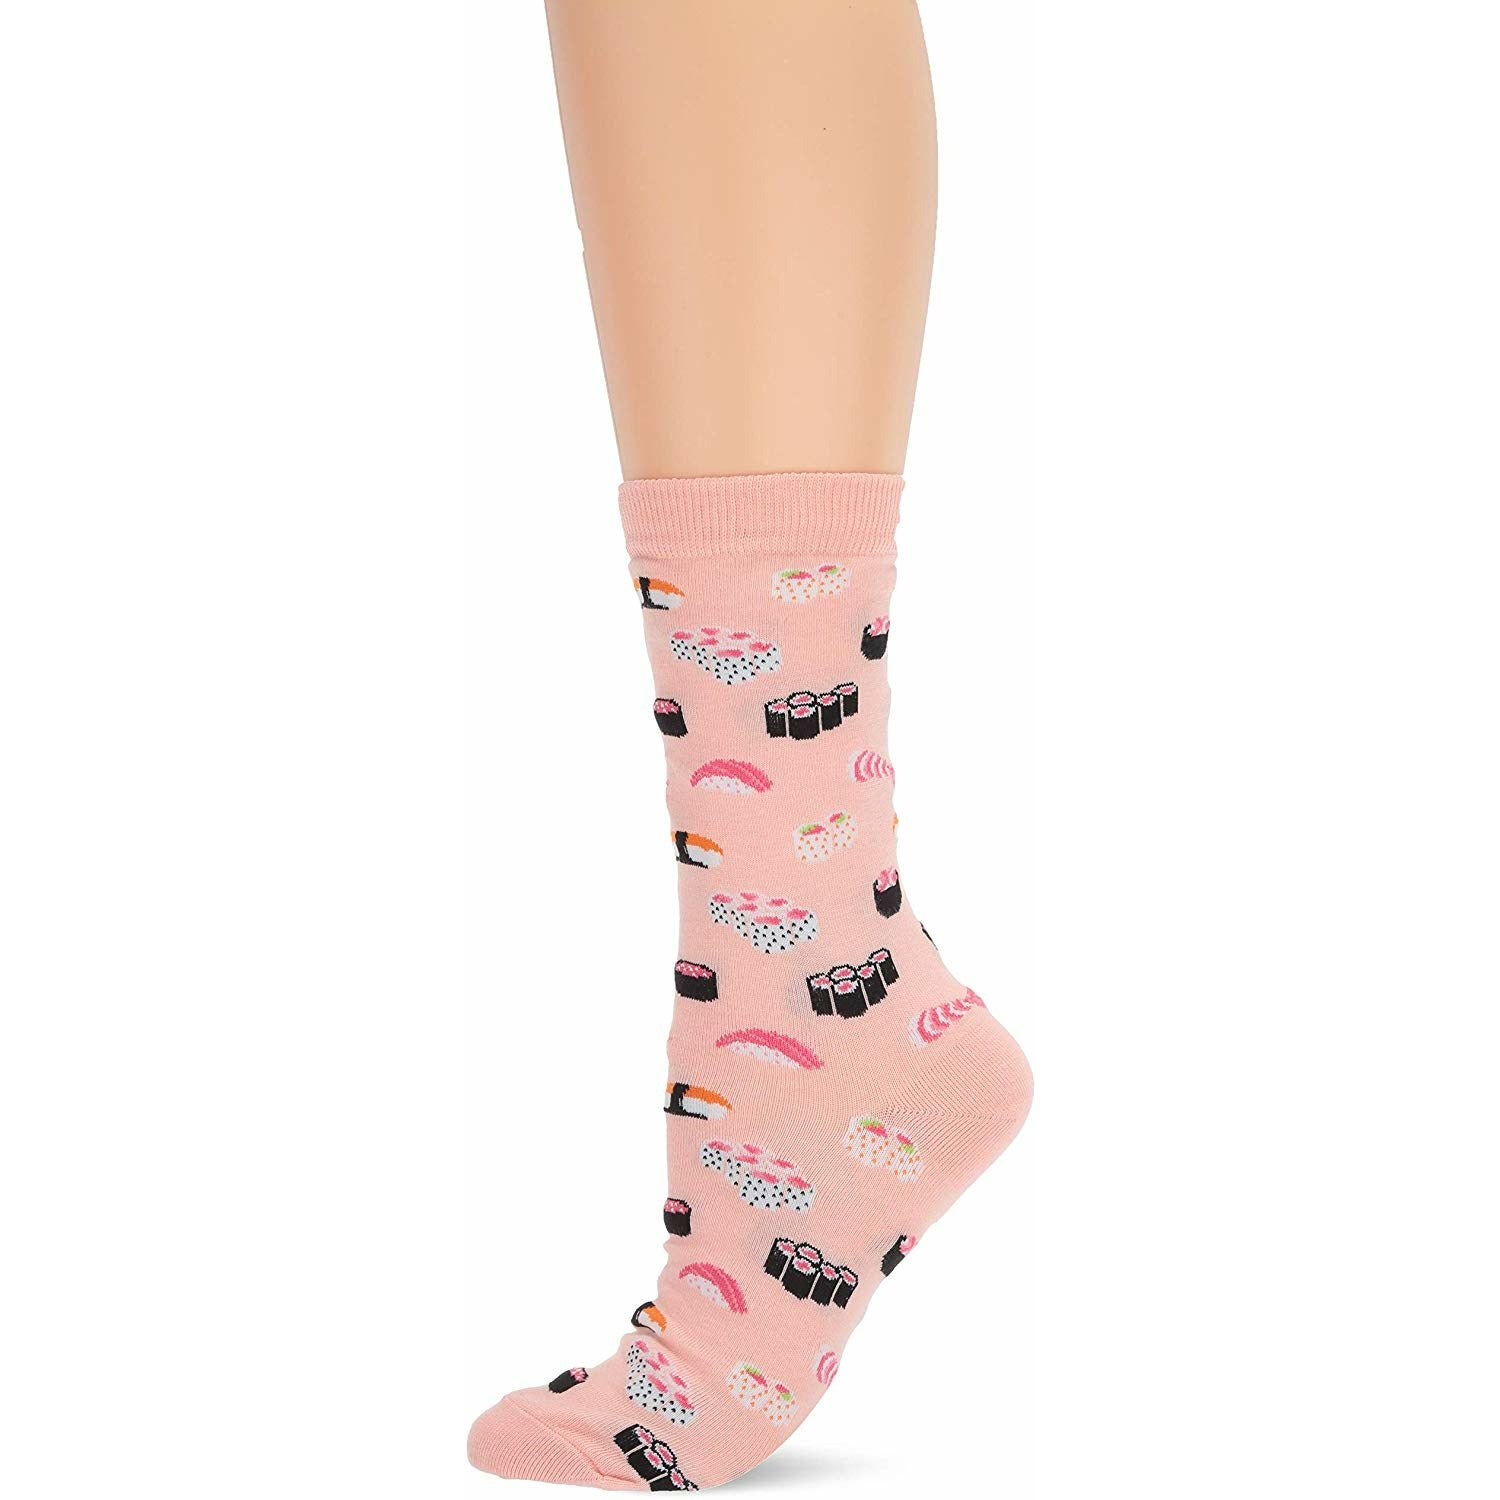 Hot Sox Sushi Womens Crew Socks